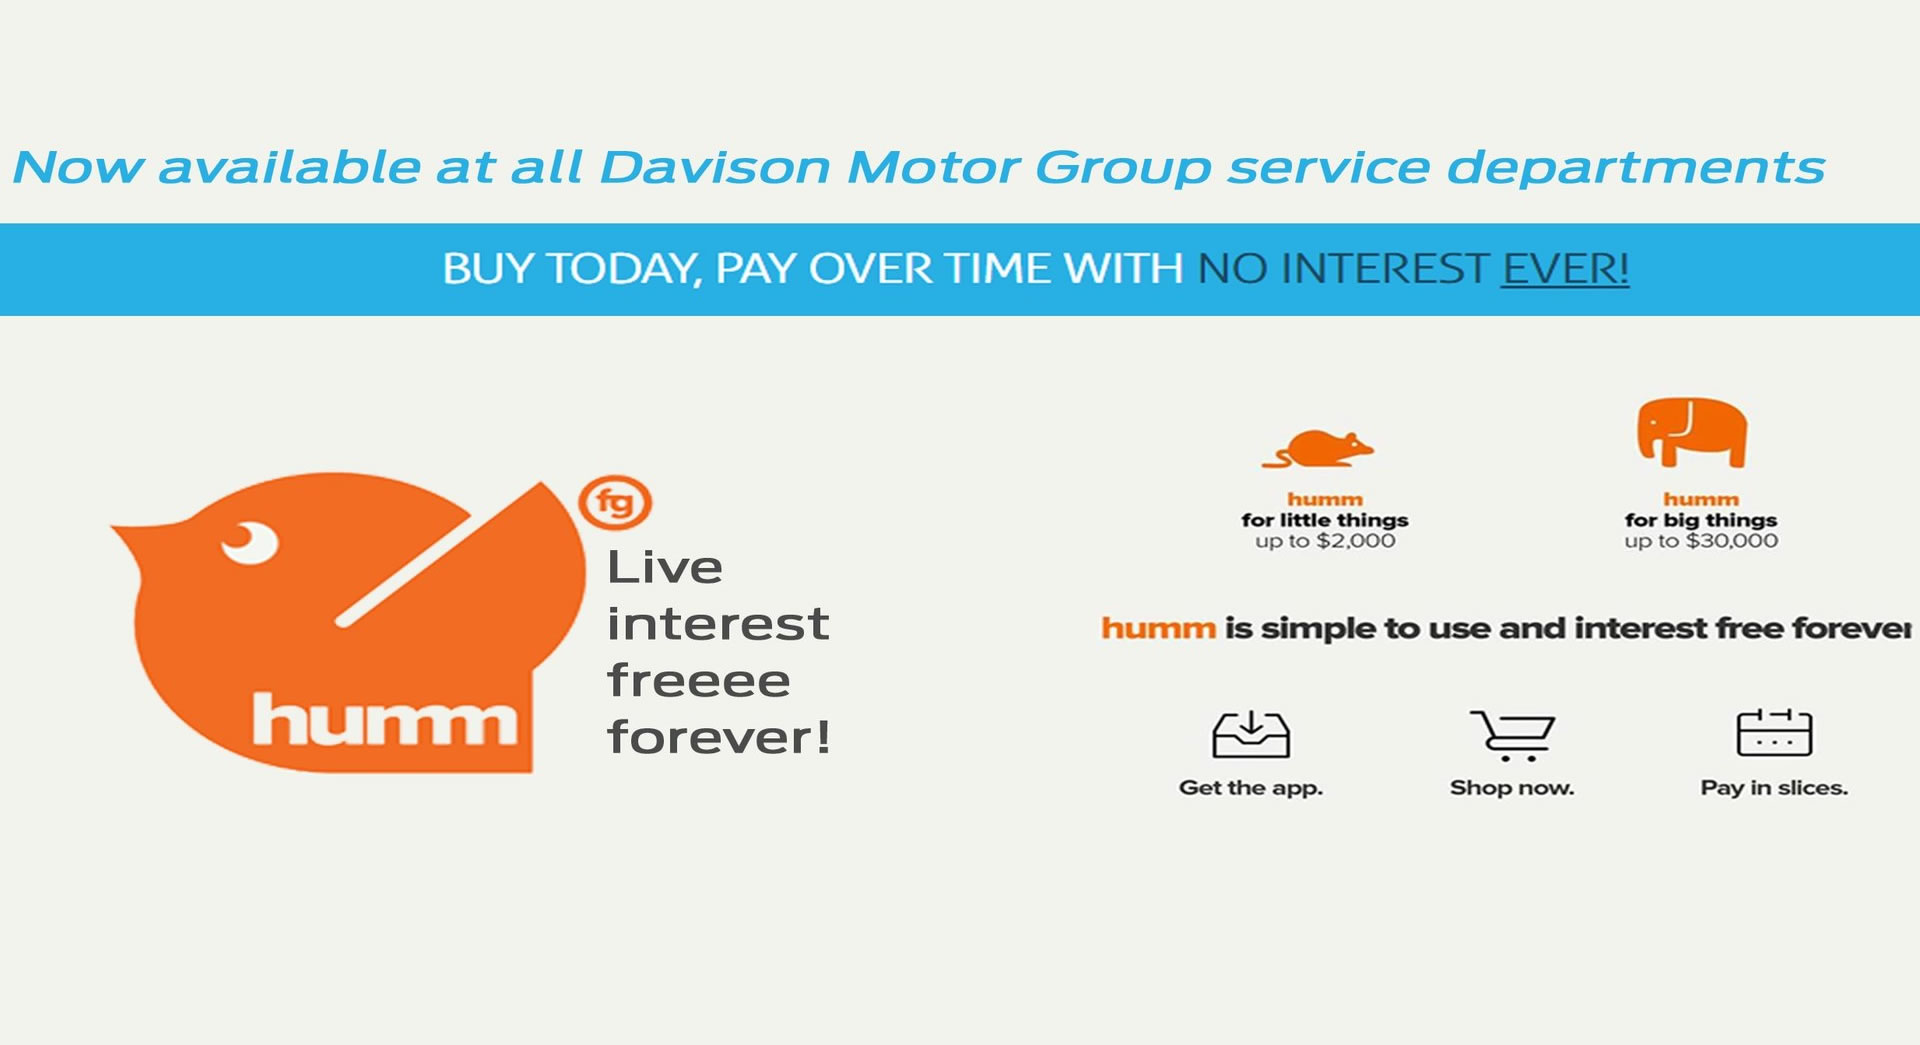 Davison Suzuki Live Interest Free Forever with Humm